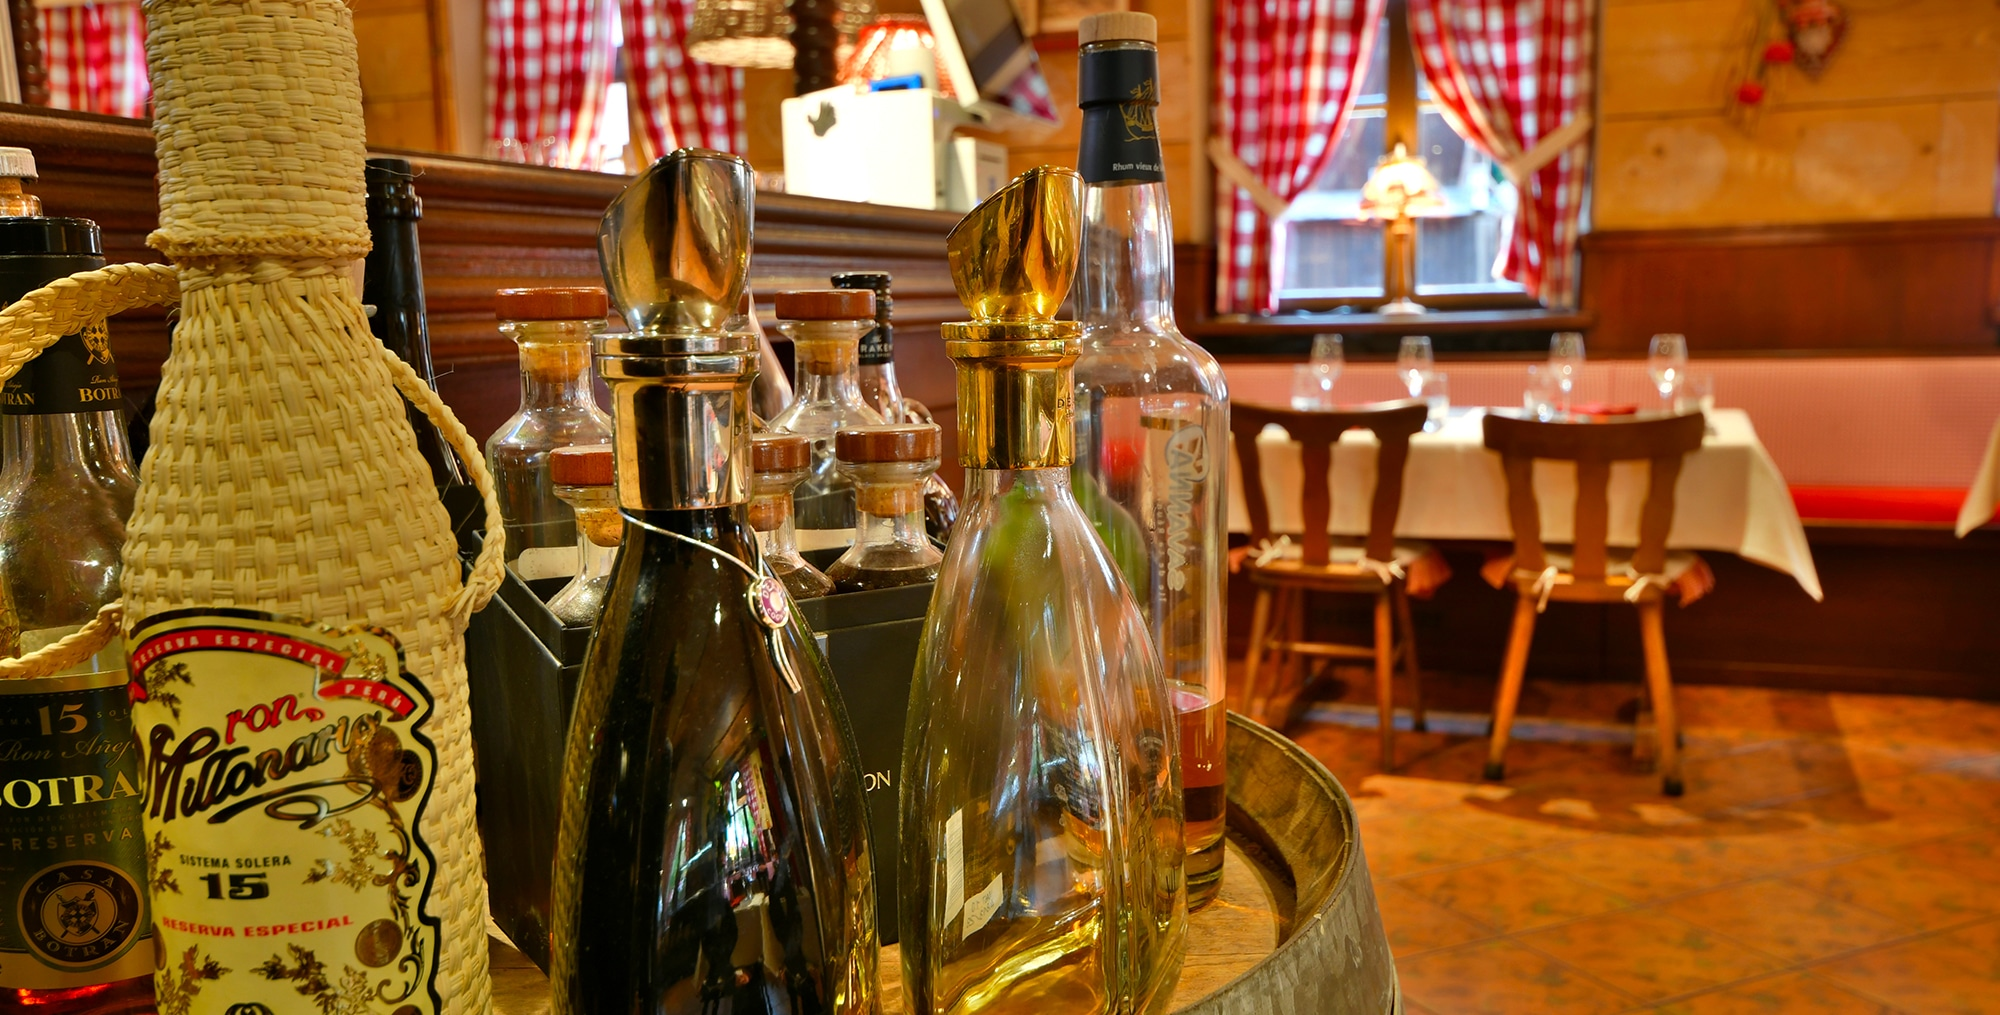 Restaurant Au Cheval Noir Herrlisheim - Photo alcool